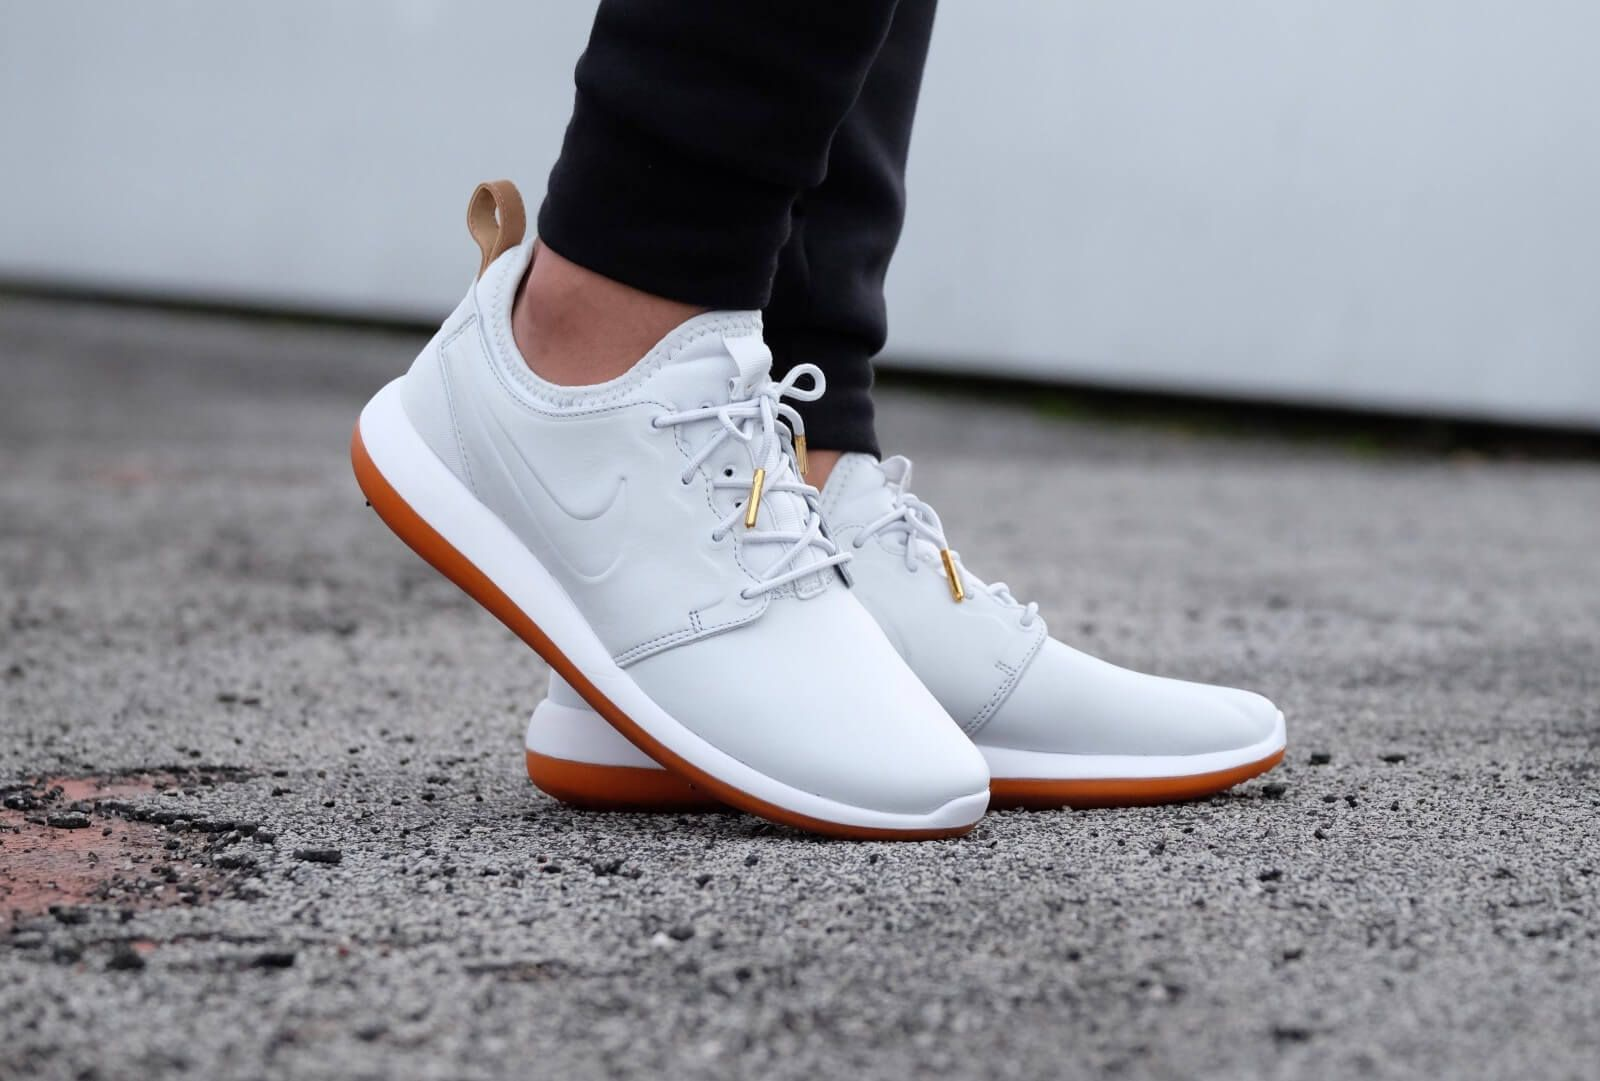 competitive price 7a5f6 33ed8 Nike Roshe Two Leather PRM Off White#x2F;Off White-White-Gum - 881987-100